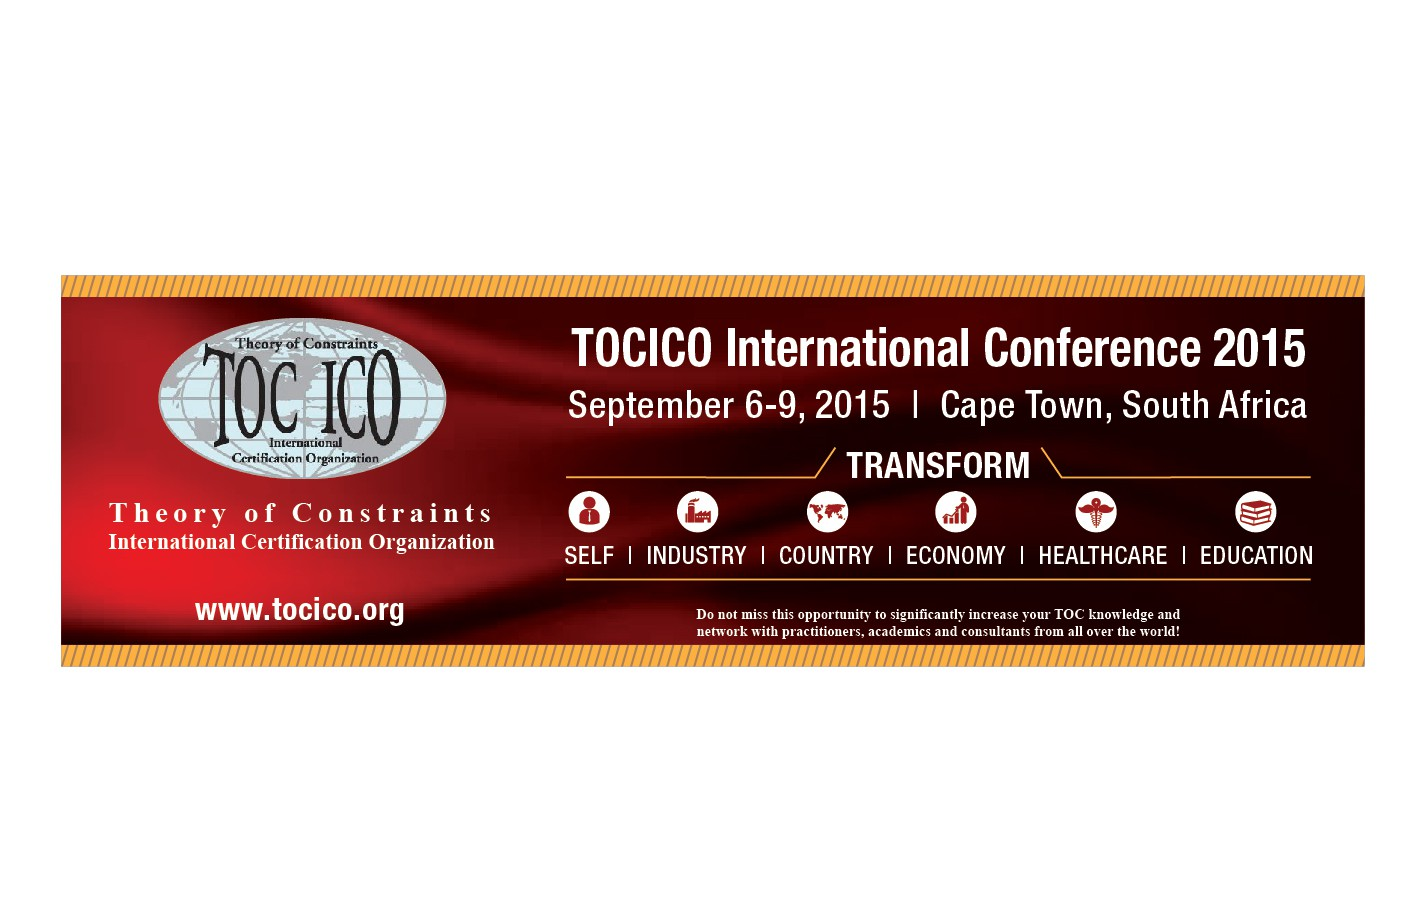 create a transformation banner ad for an international business conference